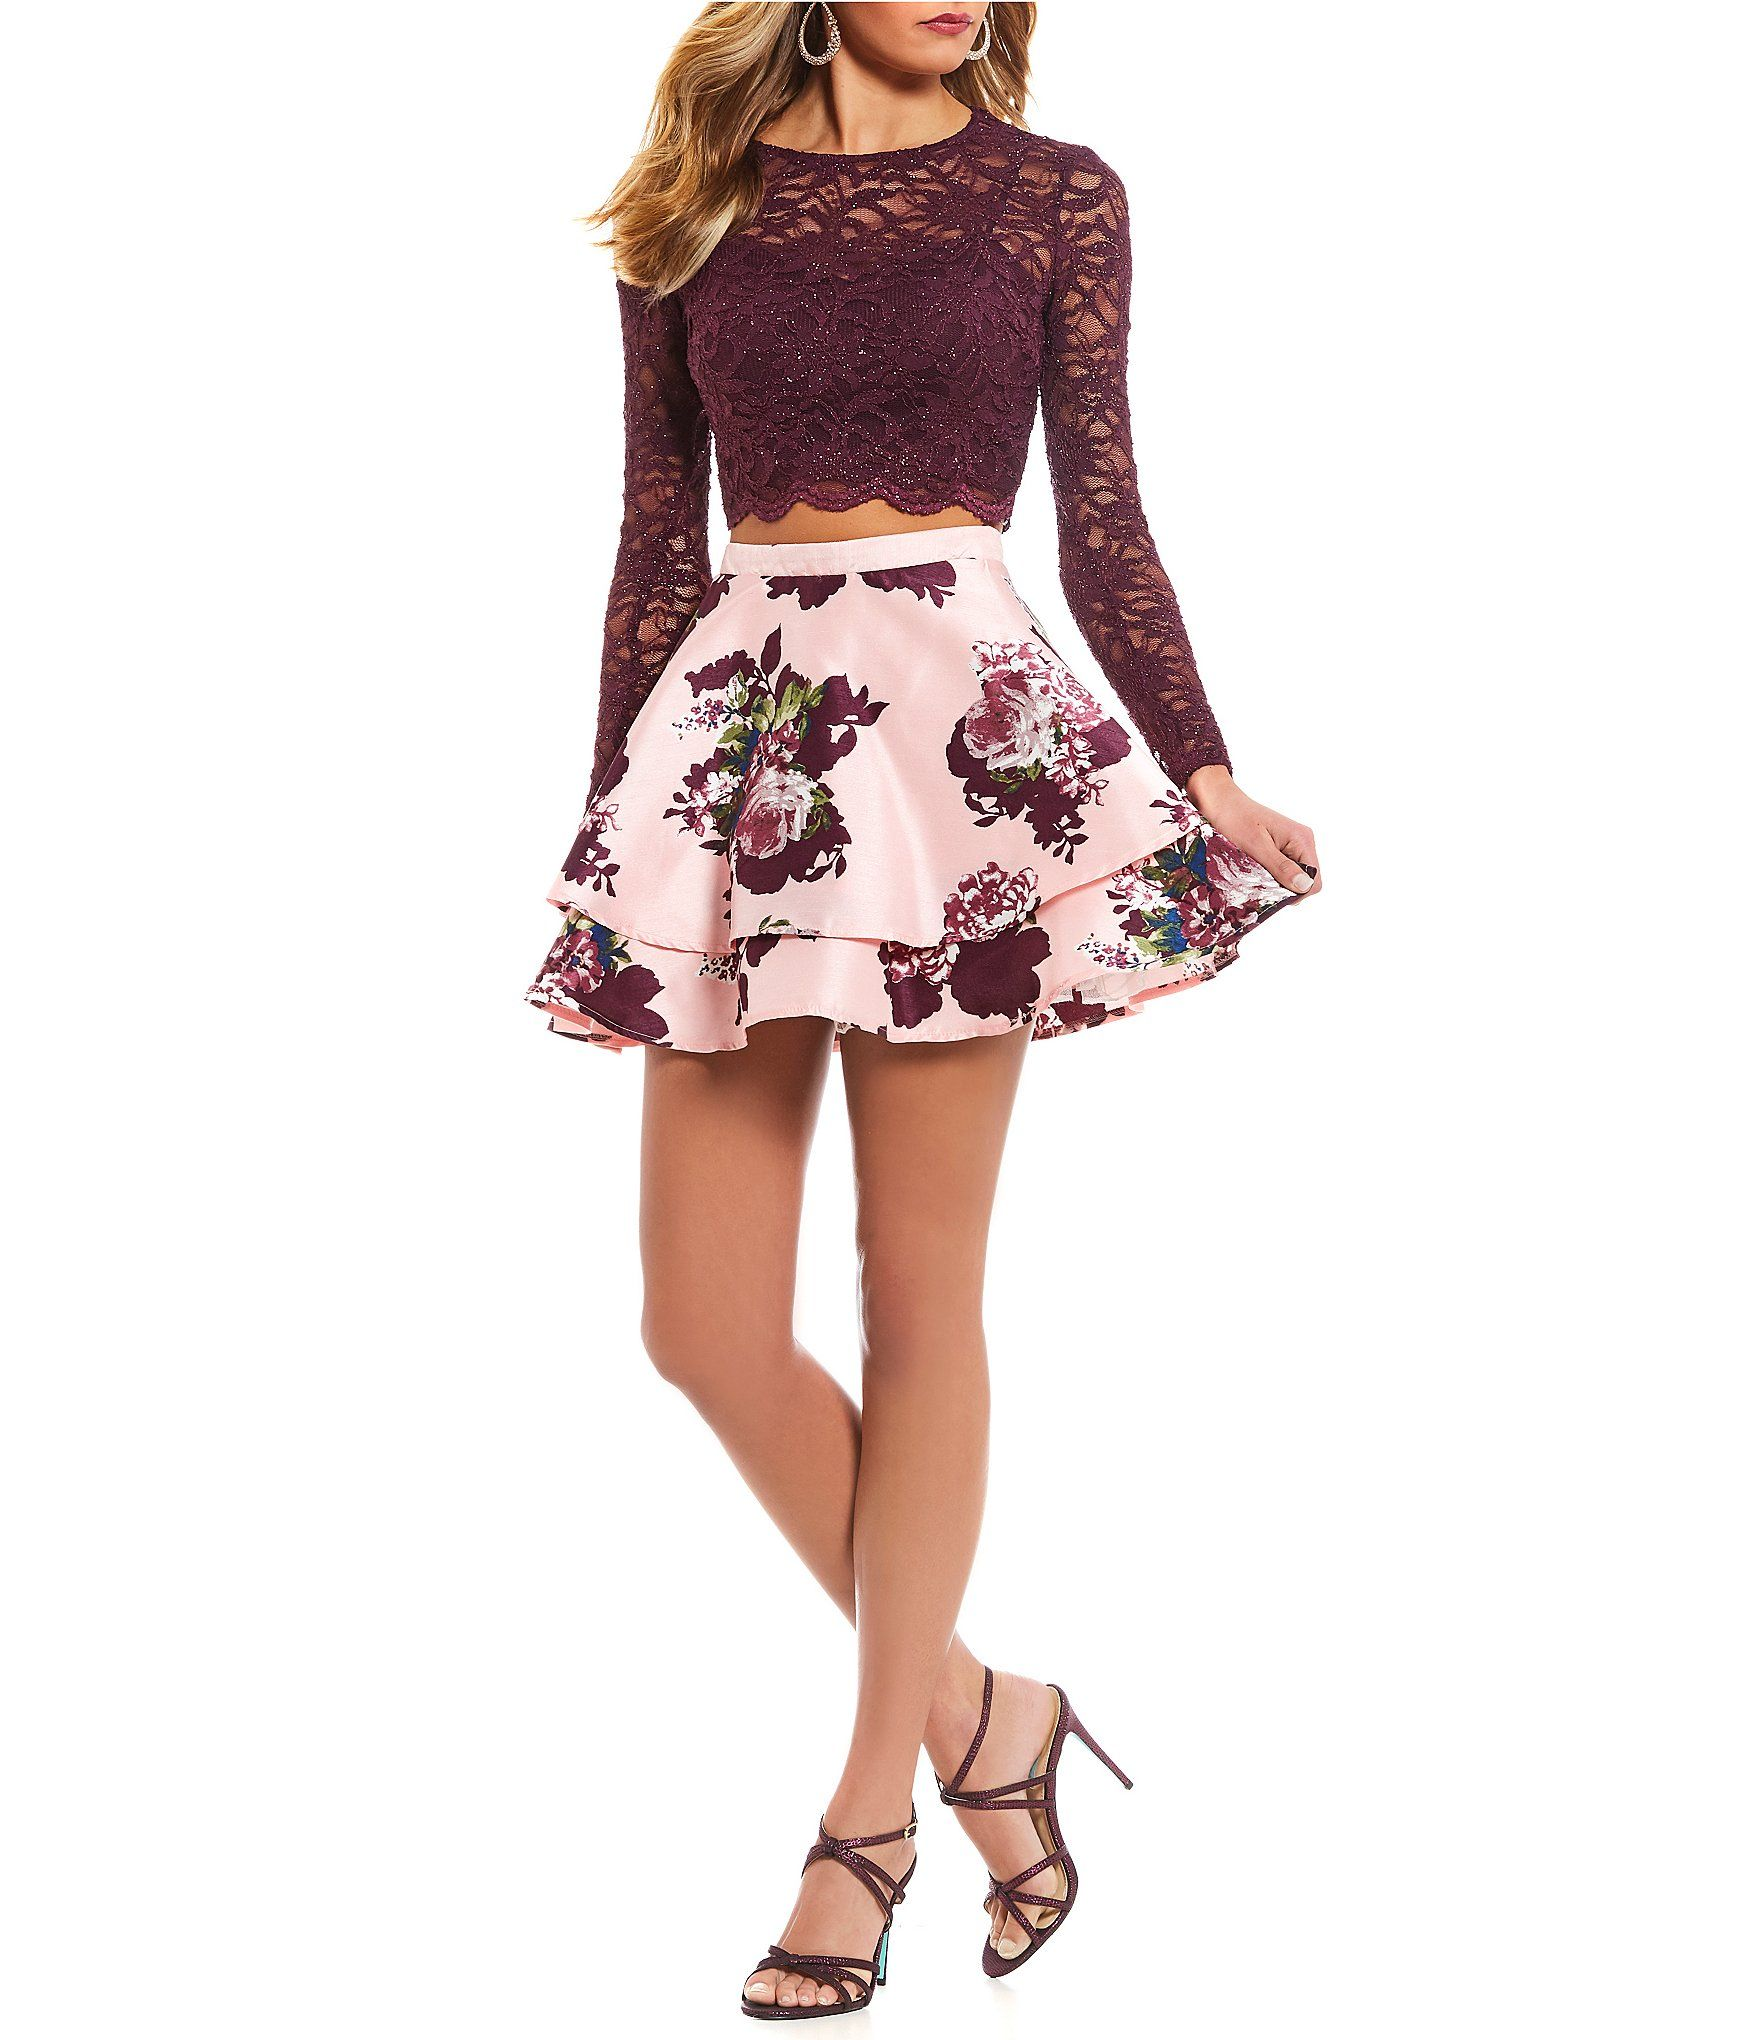 07c333da5 Long Sleeve Lace Top With Floral Skirt Two Piece Dress - raveitsafe